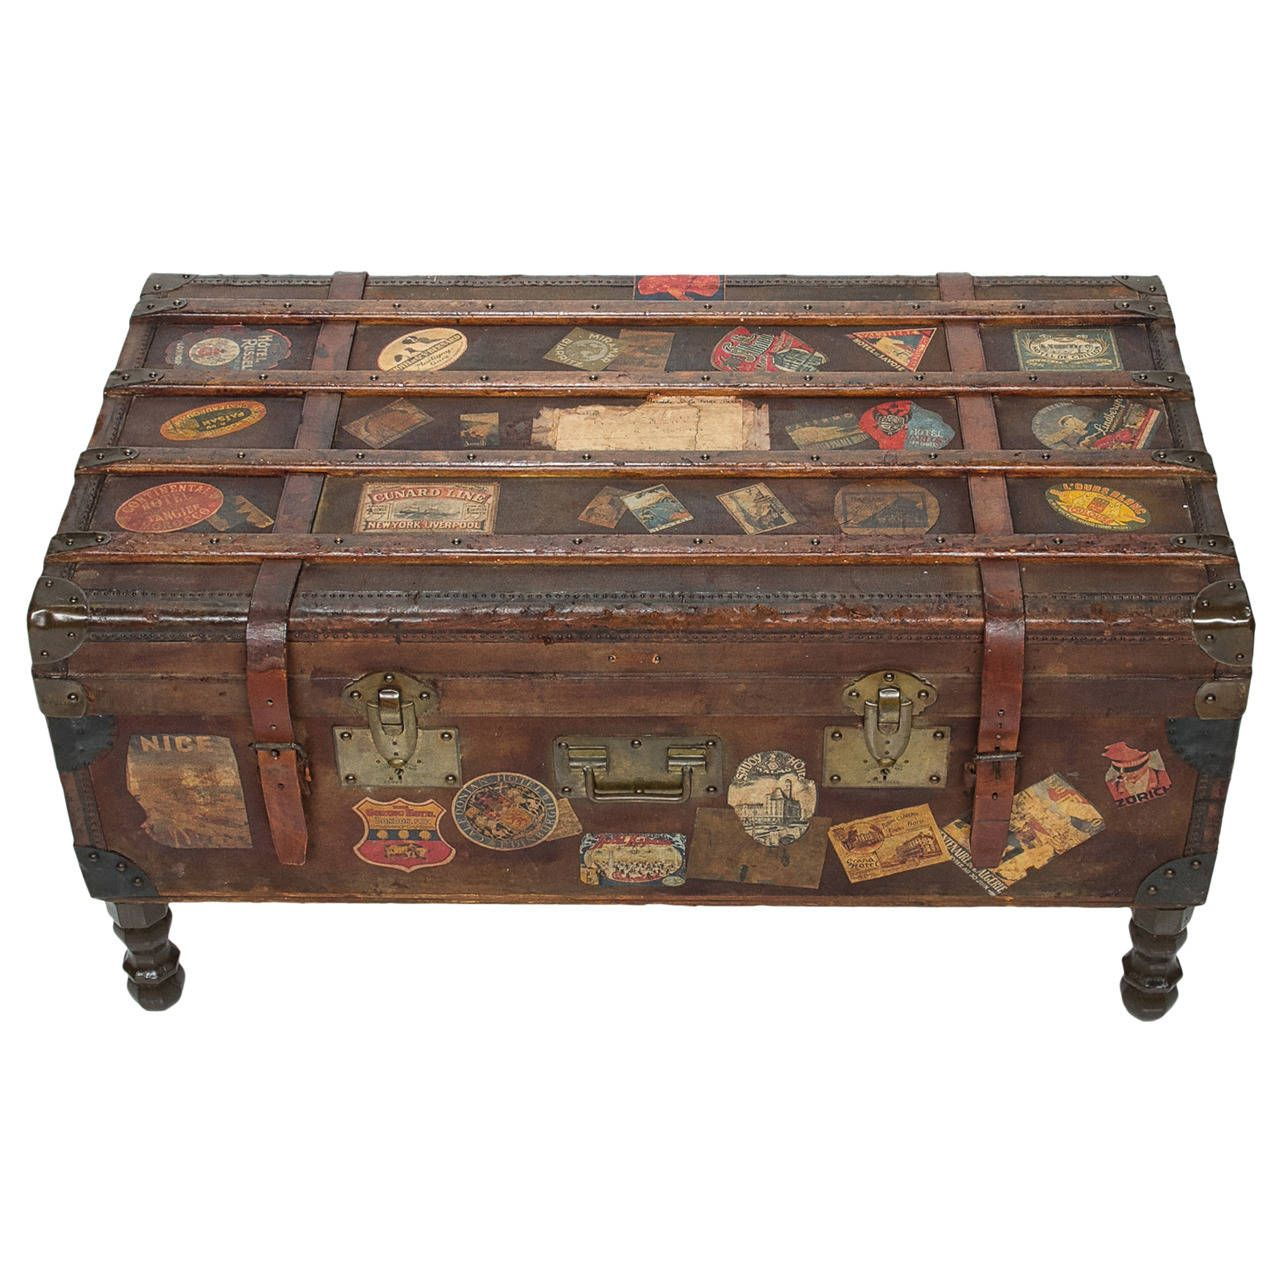 Great Trunk Makes A Nice Narrow Coffee Table With Storage But